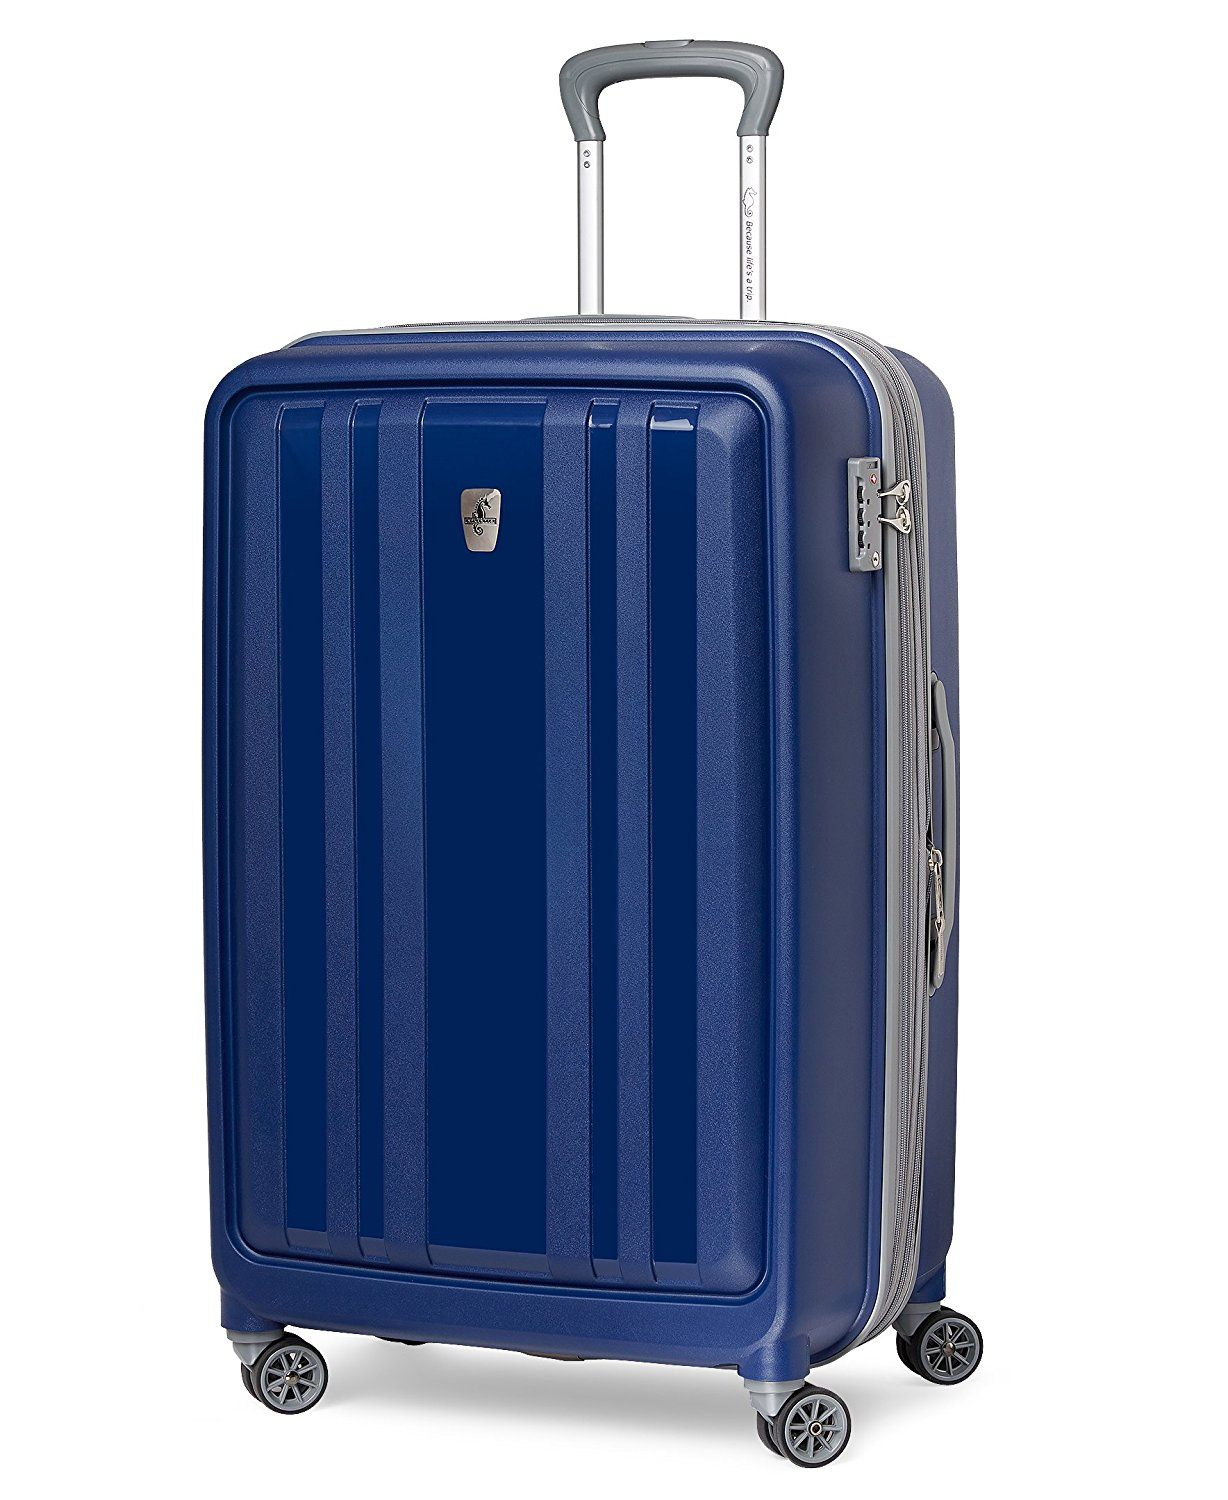 Atlantic Luggage Solstice 28 Inch Exp. Hardside Spinner